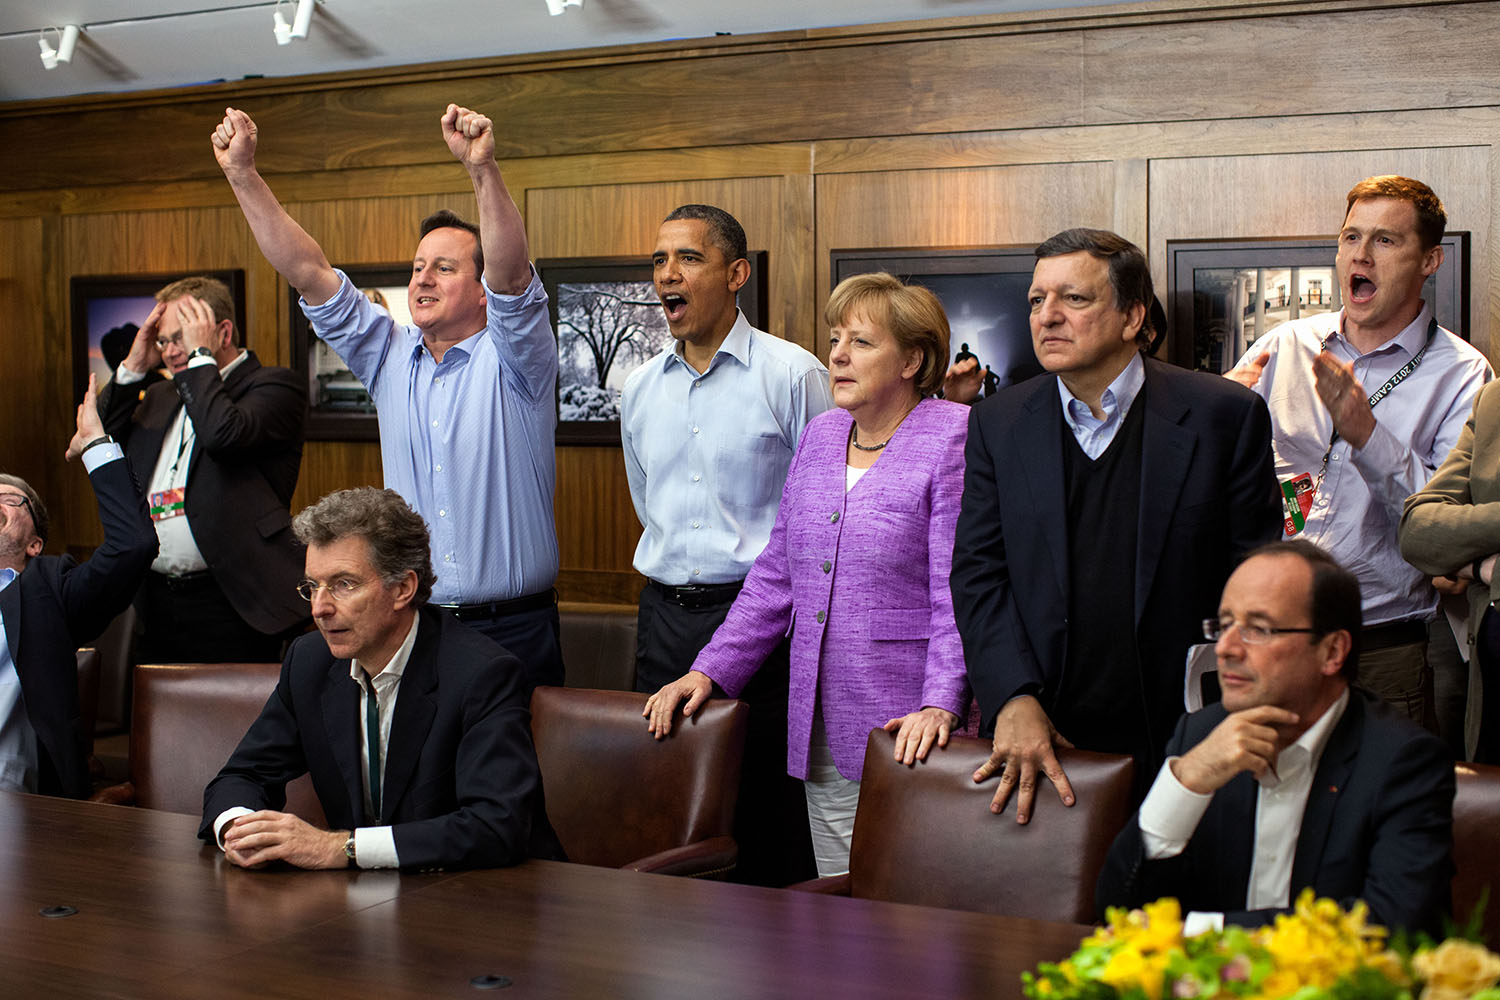 """May 19, 2012 """"At Camp David for the G8 Summit, European leaders took a break to watch the overtime shootout of the Chelsea vs. Bayern Munich Champions League final. Prime Minister David Cameron of the United Kingdom, the President, Chancellor Angela Merkel of Germany, José Manuel Barroso, President of the European Commission, French President Francois Hollande react during the winning goal."""" (Official White House Photo by Pete Souza) This official White House photograph is being made available only for publication by news organizations and/or for personal use printing by the subject(s) of the photograph. The photograph may not be manipulated in any way and may not be used in commercial or political materials, advertisements, emails, products, promotions that in any way suggests approval or endorsement of the President, the First Family, or the White House."""